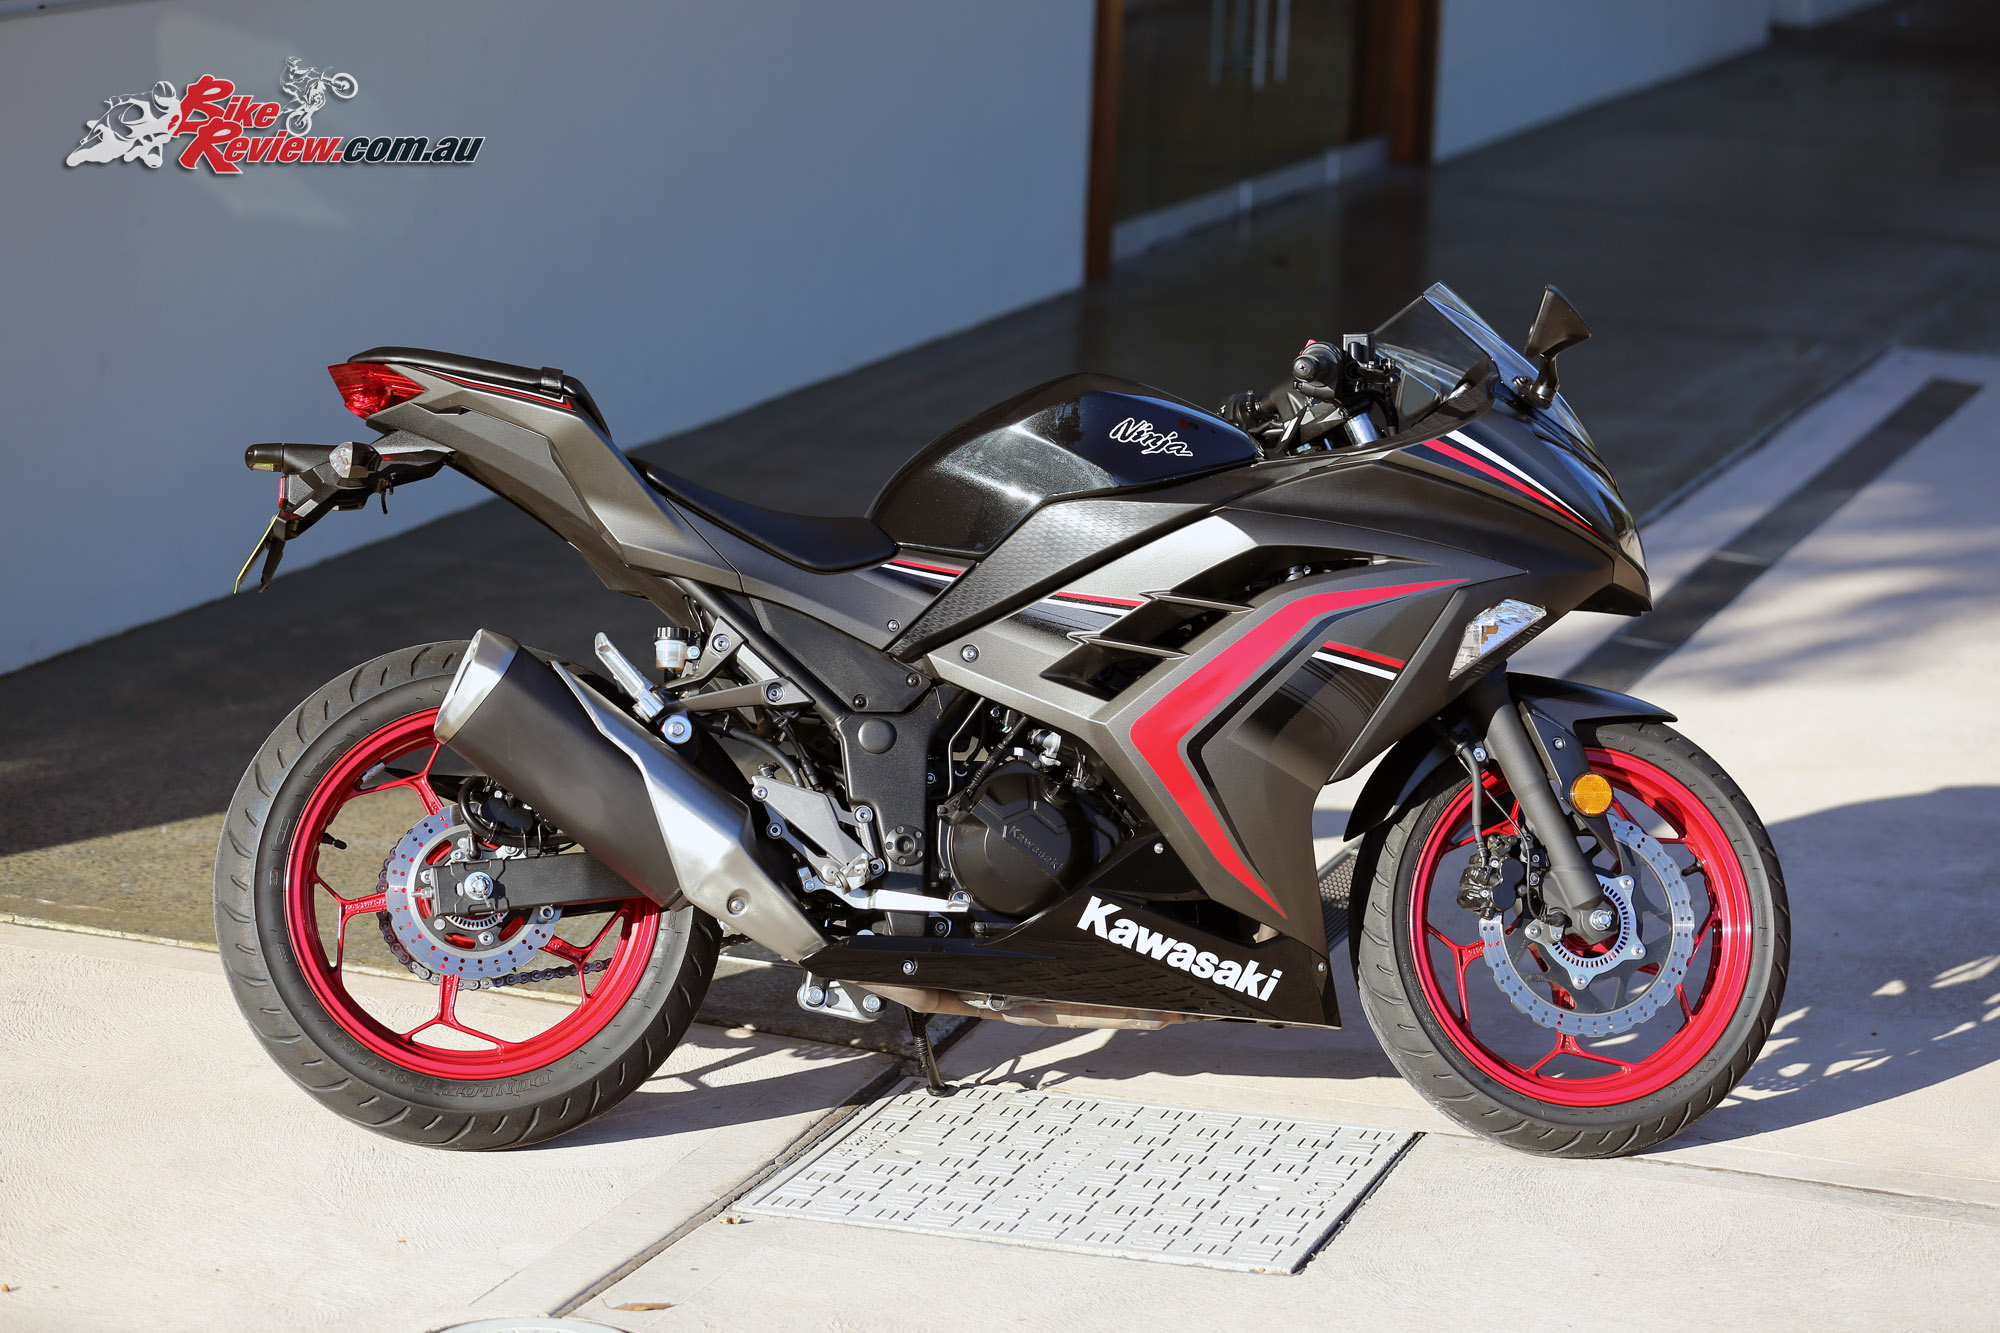 Review: 2016 Kawasaki Ninja 300 - Bike Review